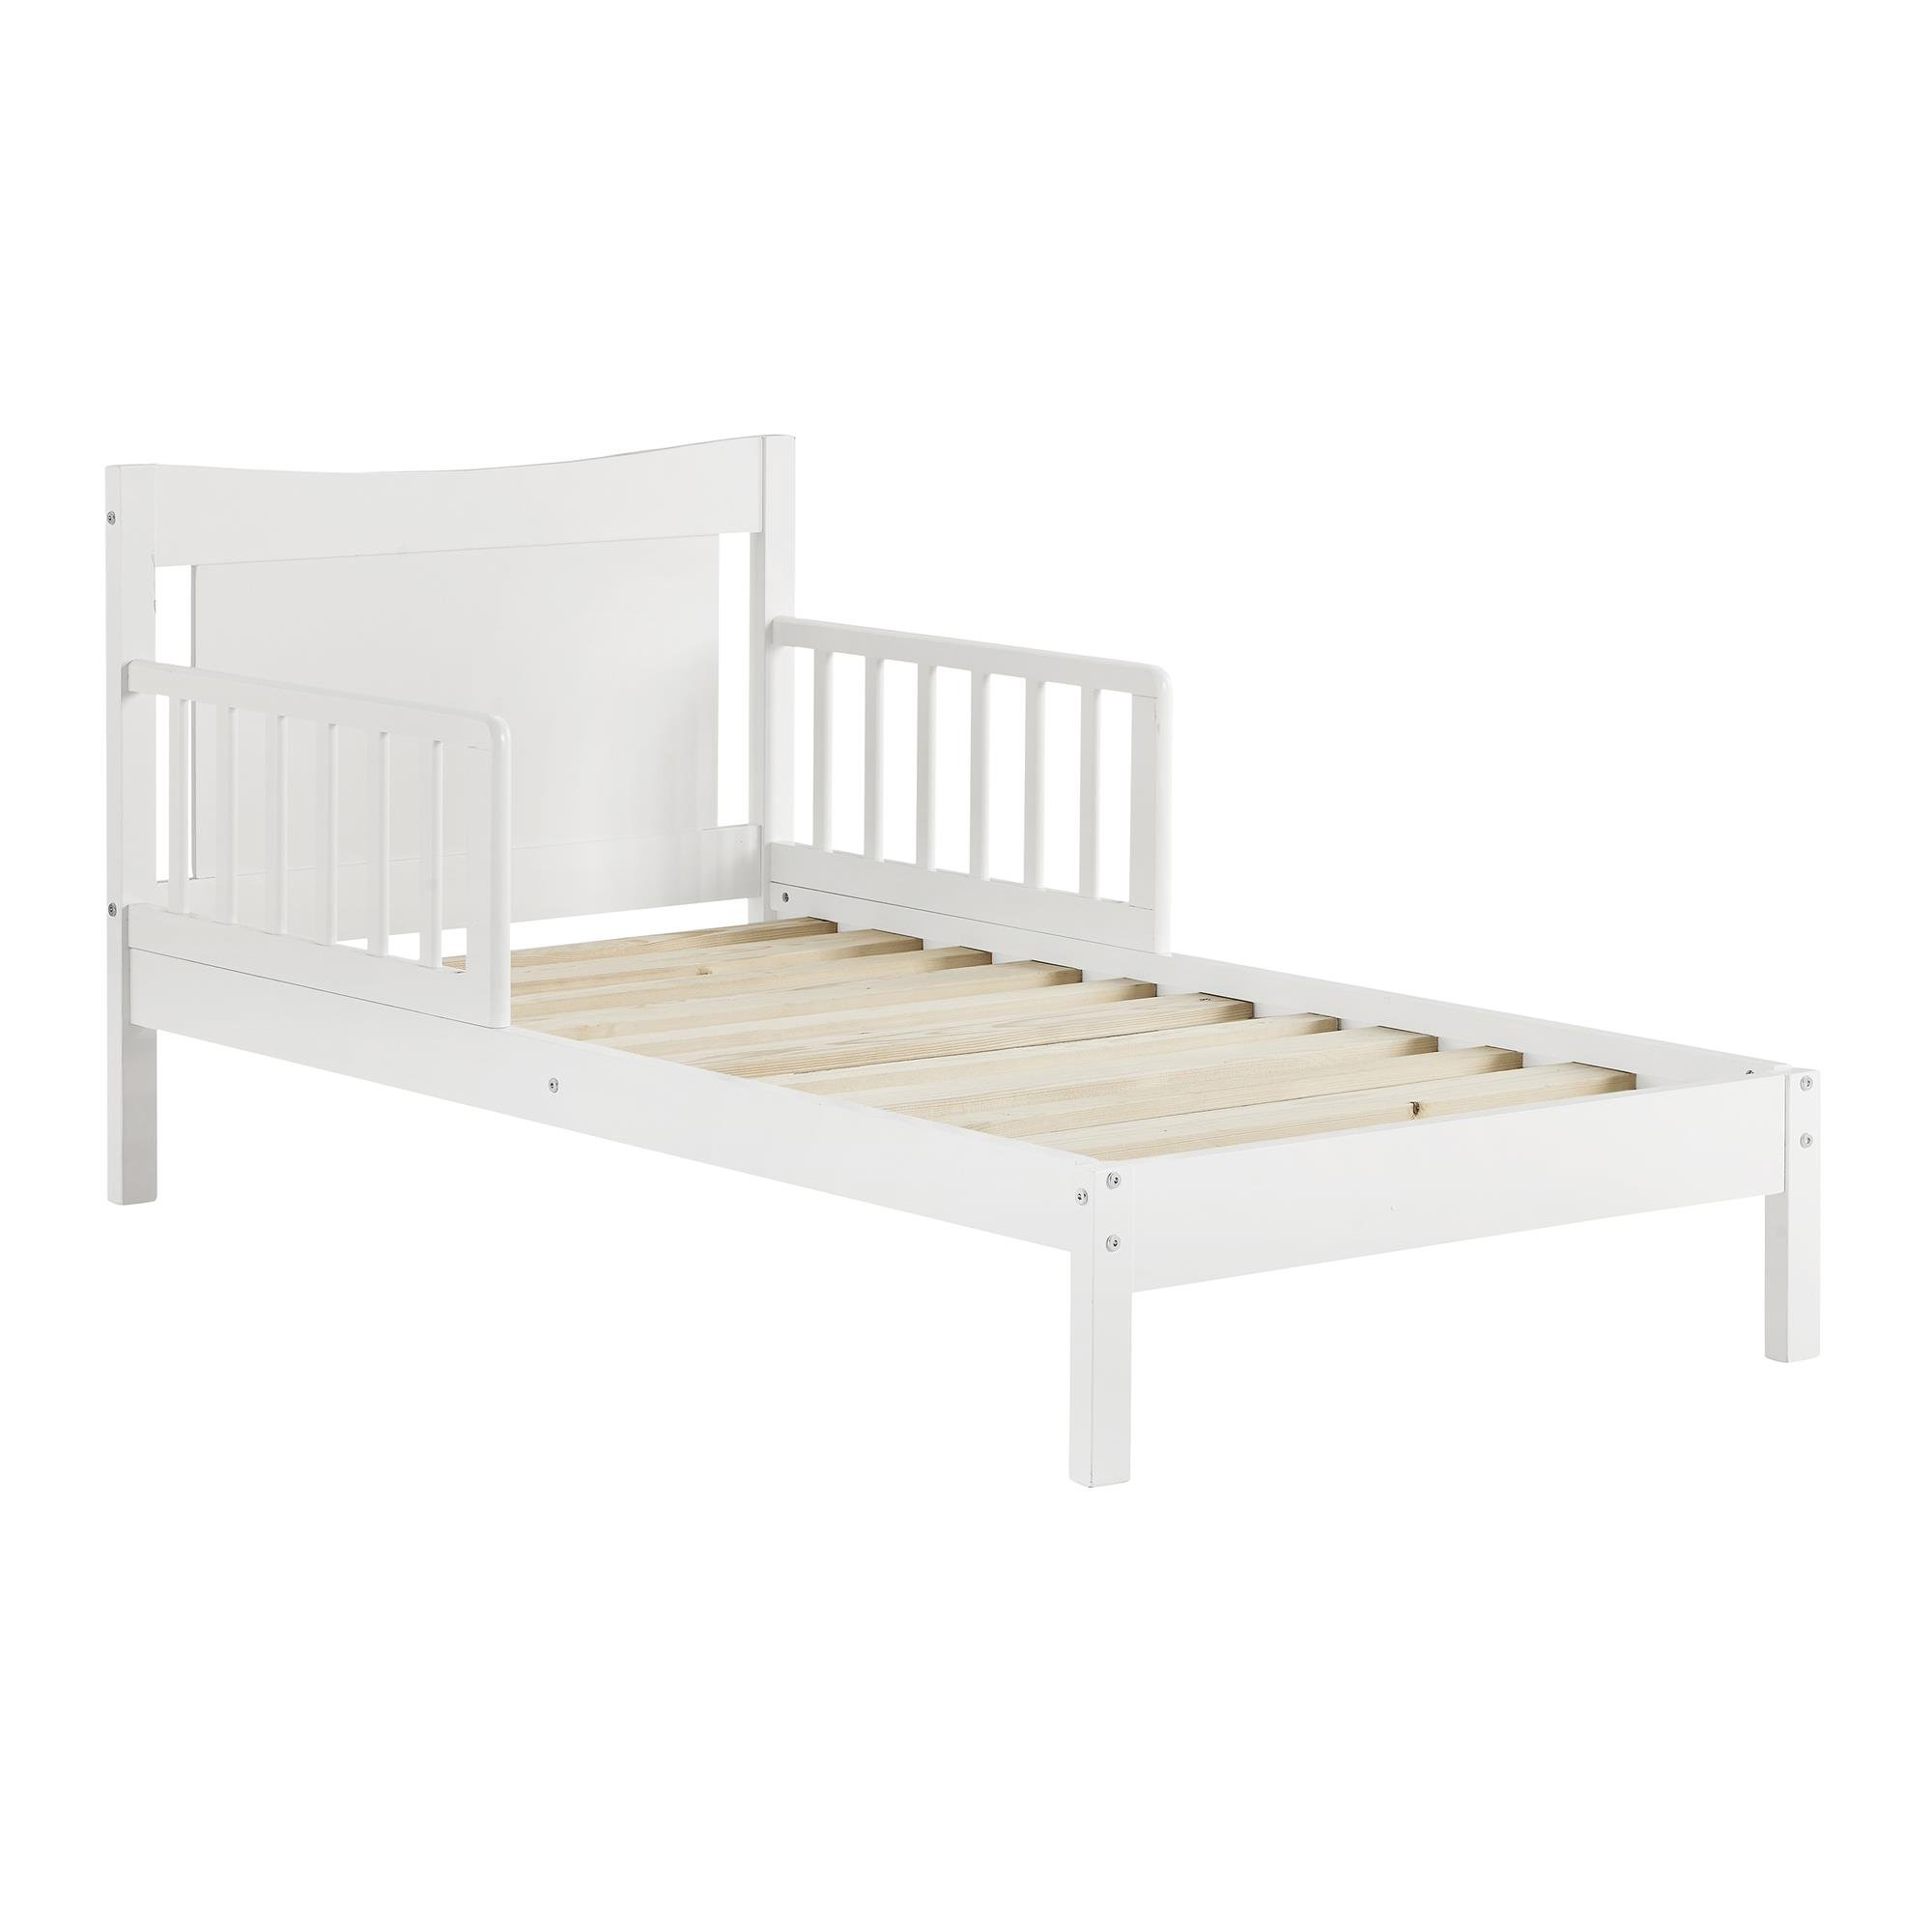 Baby Relax Memphis Toddler Bed, White by Baby Relax (Image #6)